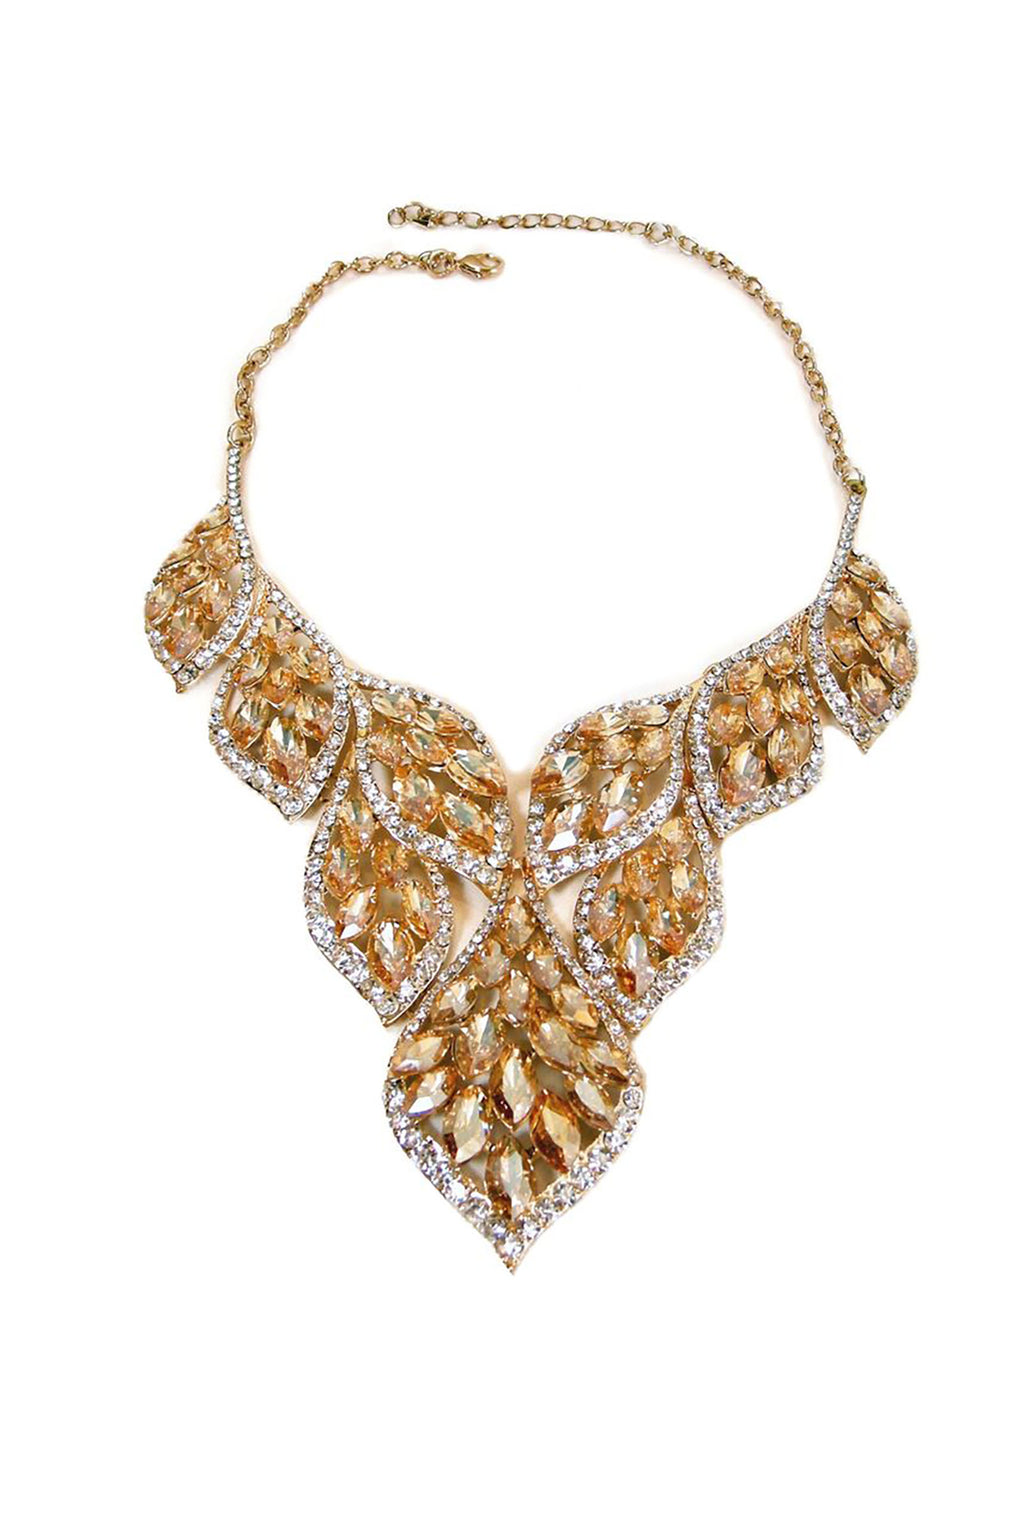 Faux Citrine and Clear Crystal Bib Necklace